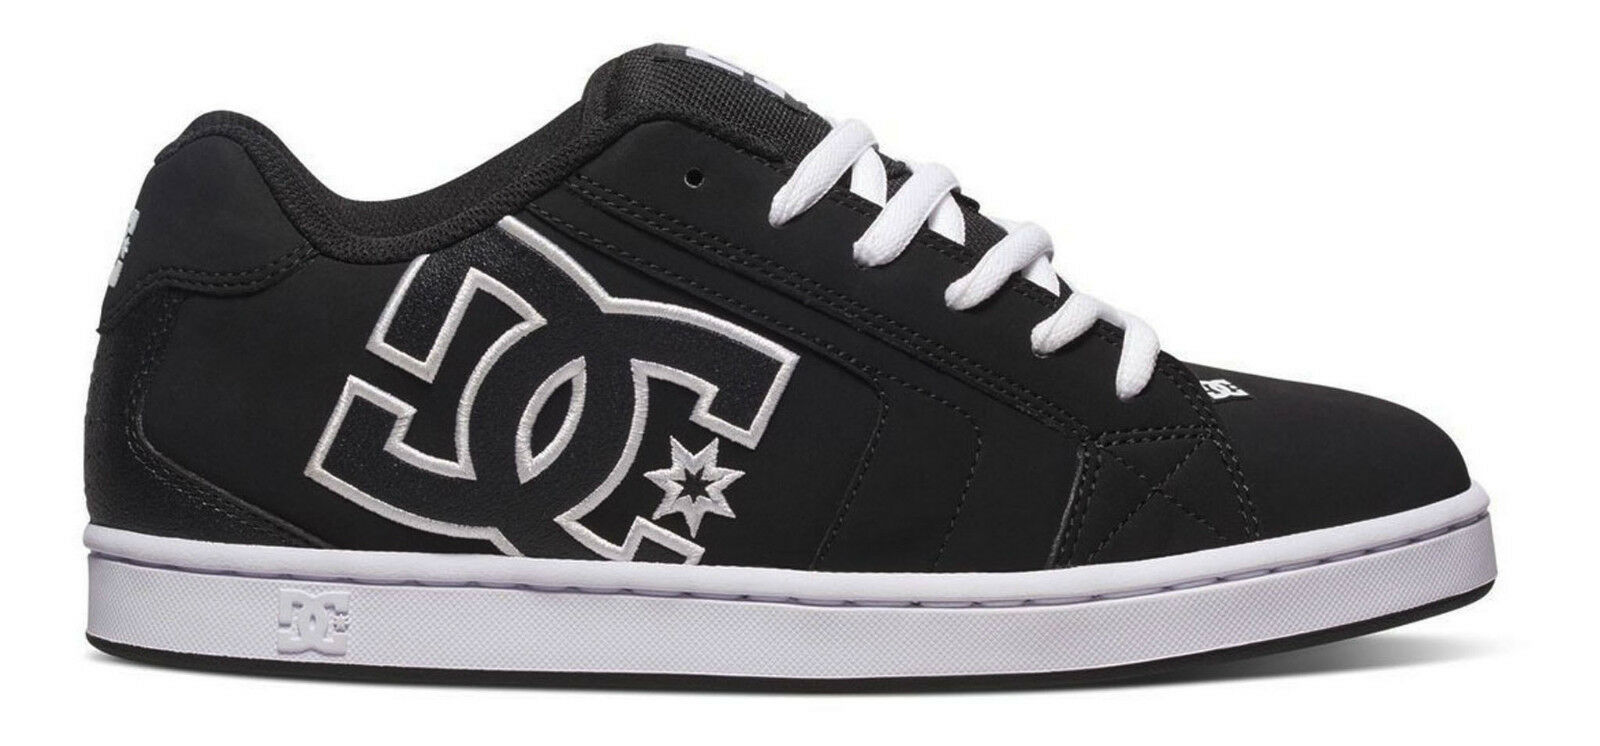 DC Shoes Men NET  - Gr: 42 & 43 - black black white  - Klassiker - UVP.: 89,95